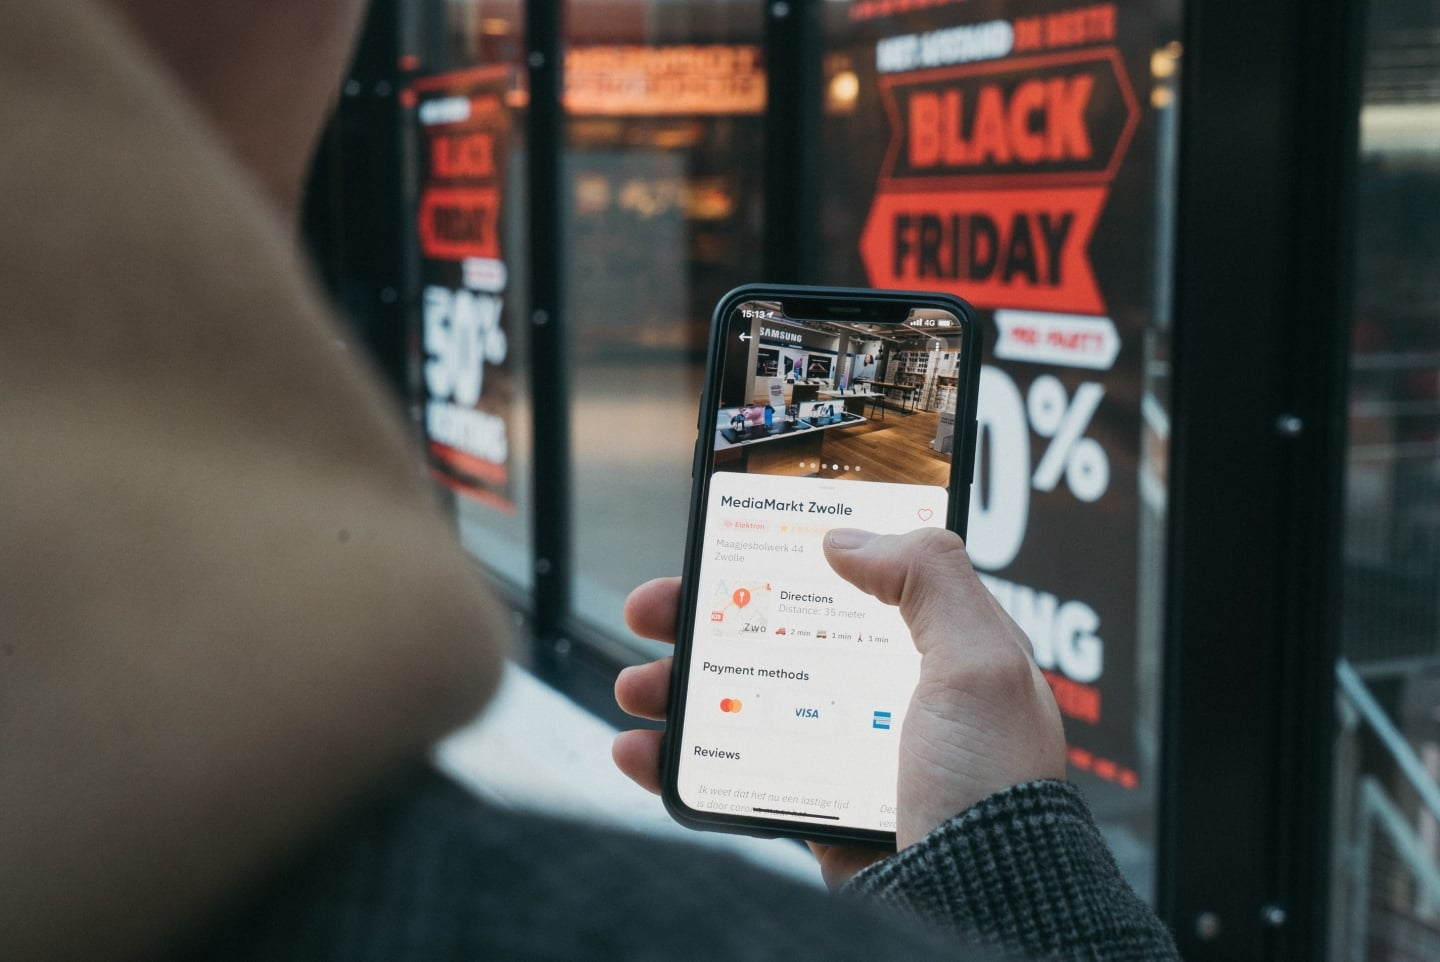 What Is Shoppertainment? And Why Does It Matter?